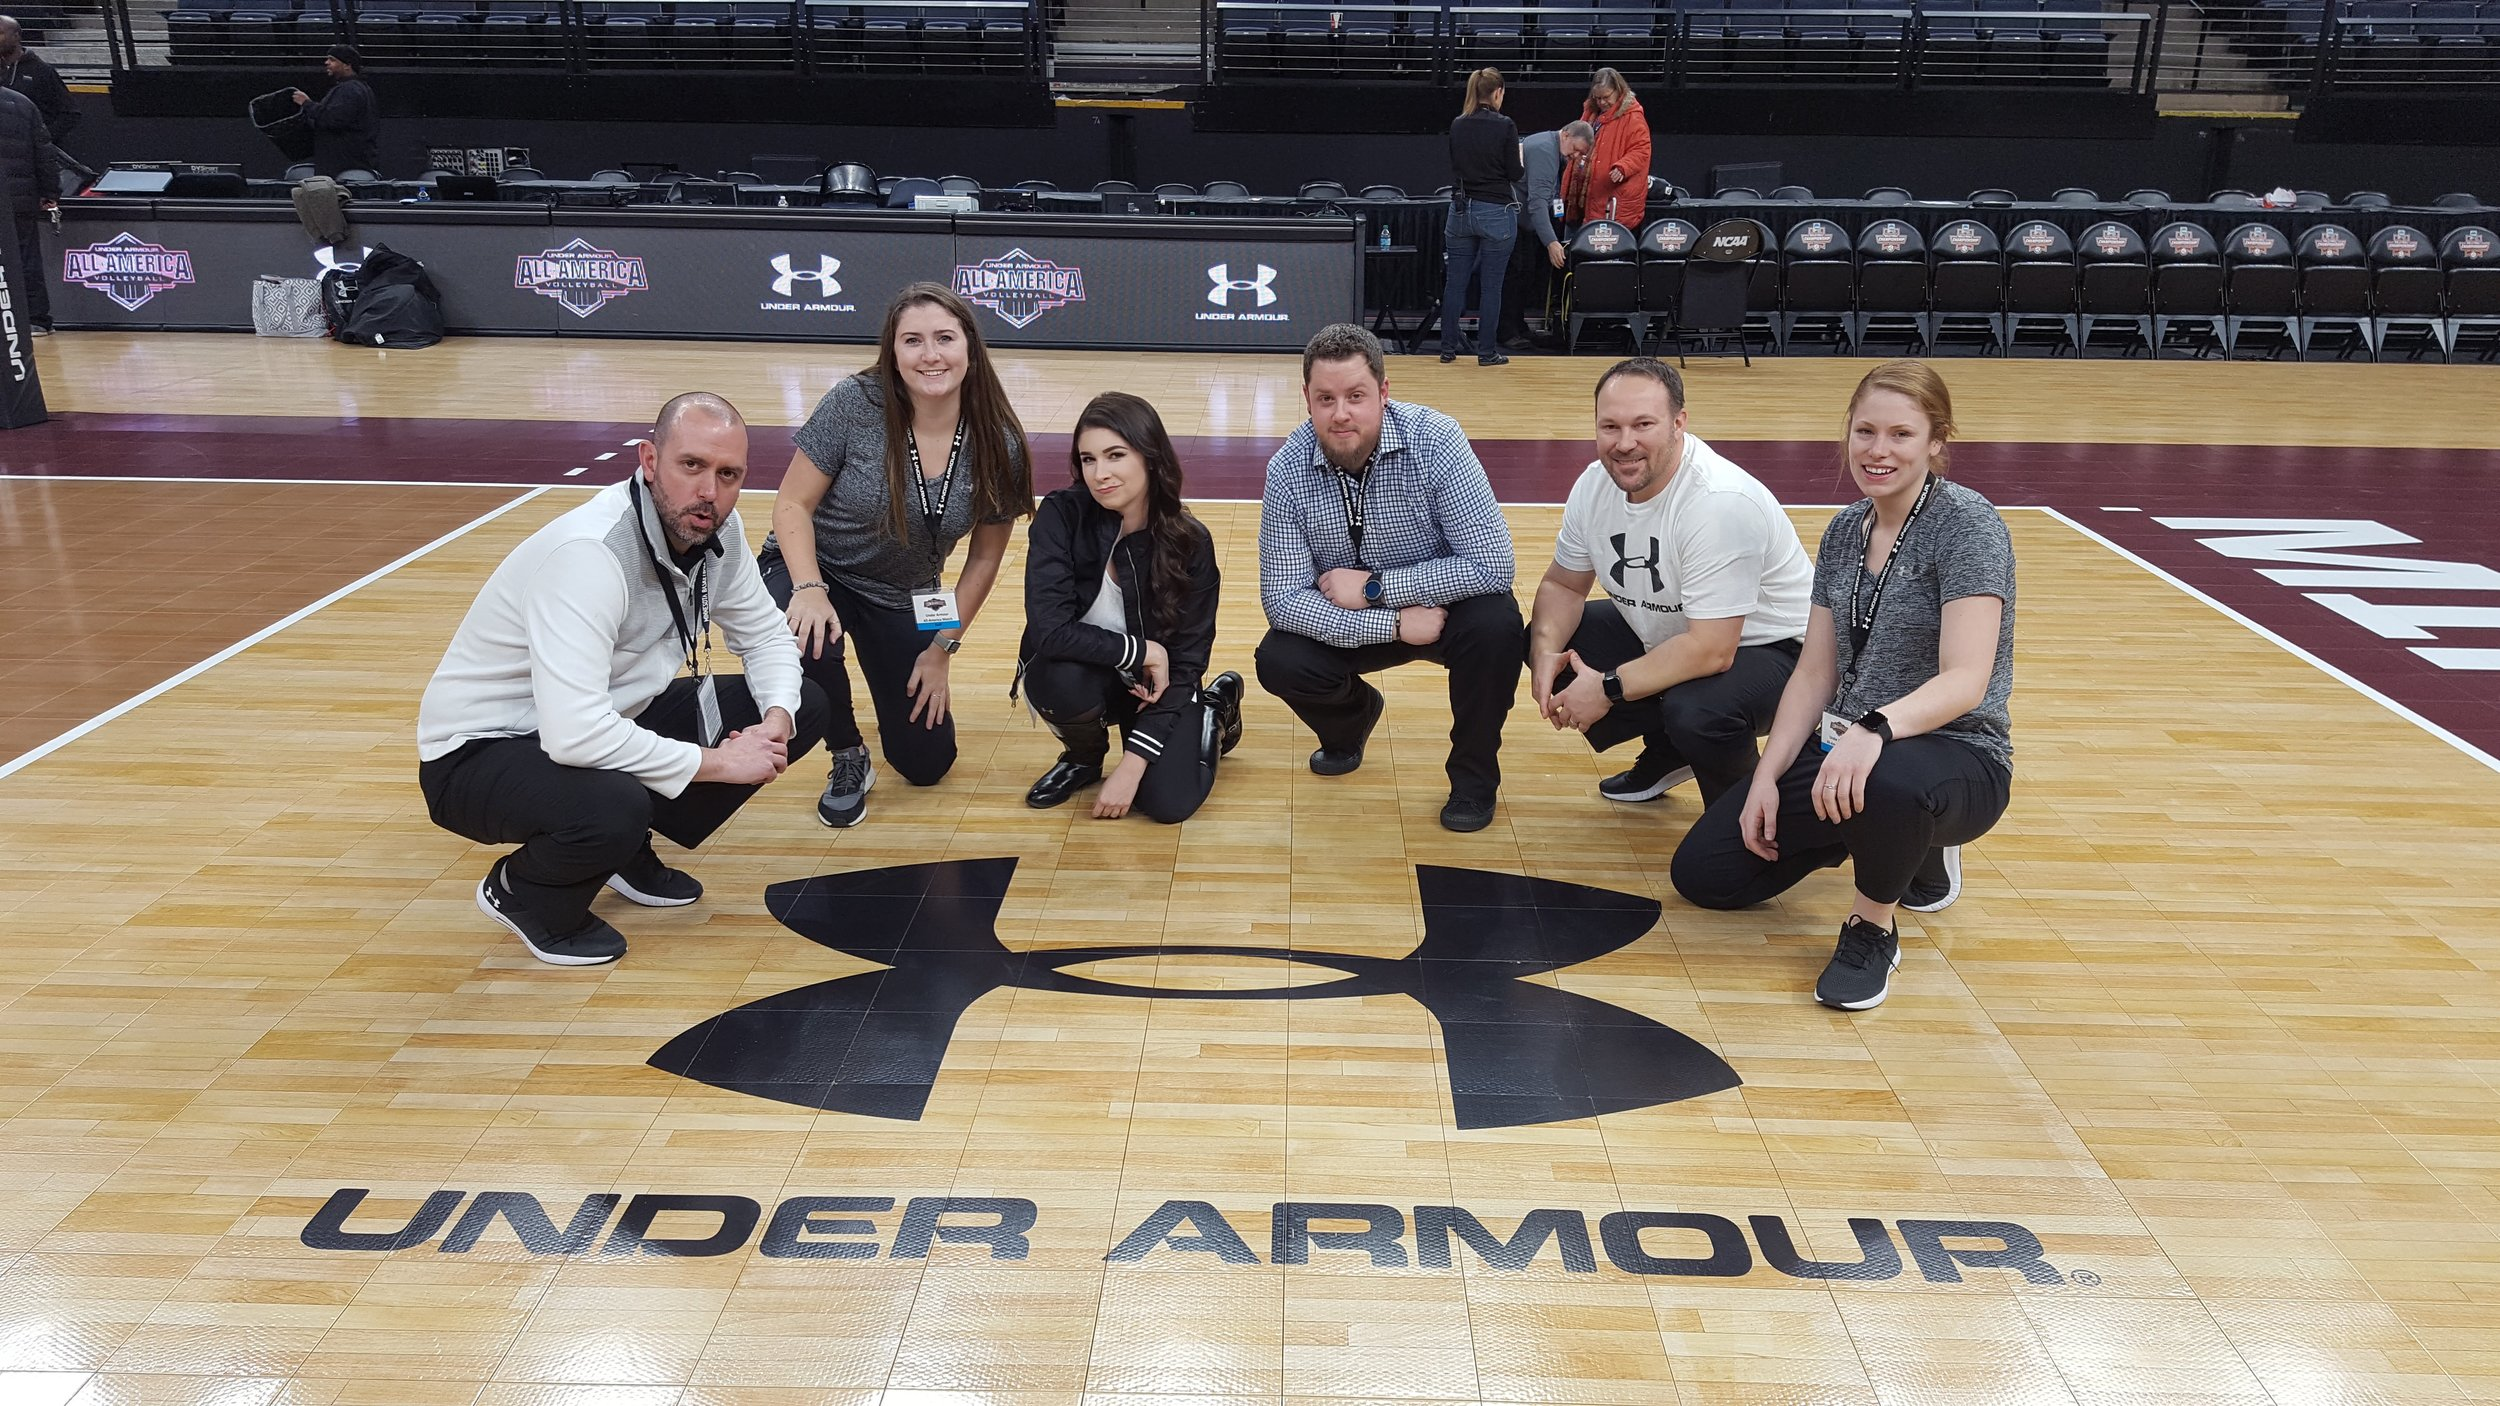 The Under Armour All America Volleyball / 3PT / Timberwolves production #squad.